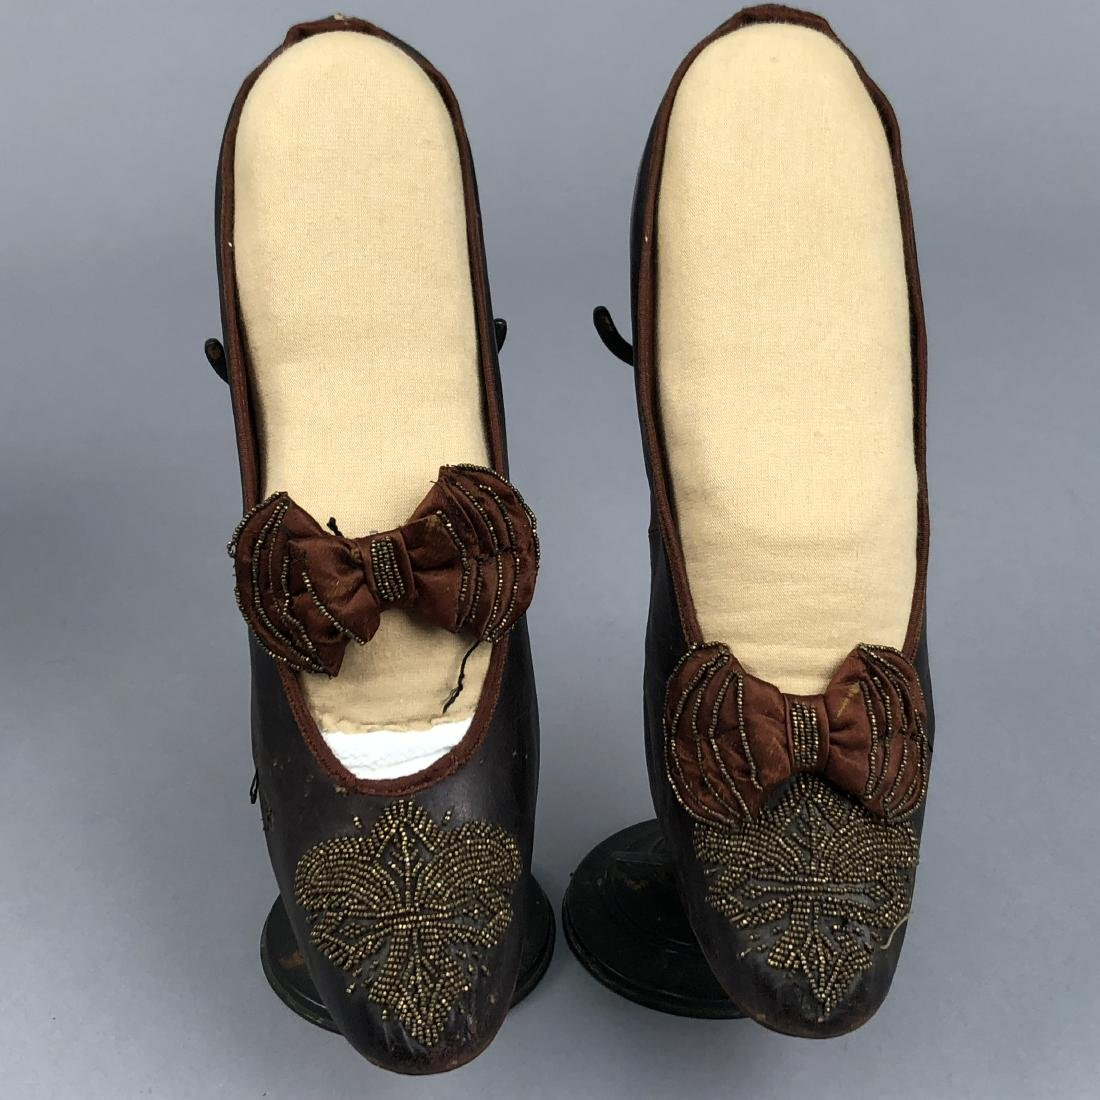 TWO PAIR LADIES' SHOES with LOUIS HEEL, 1870s - 3